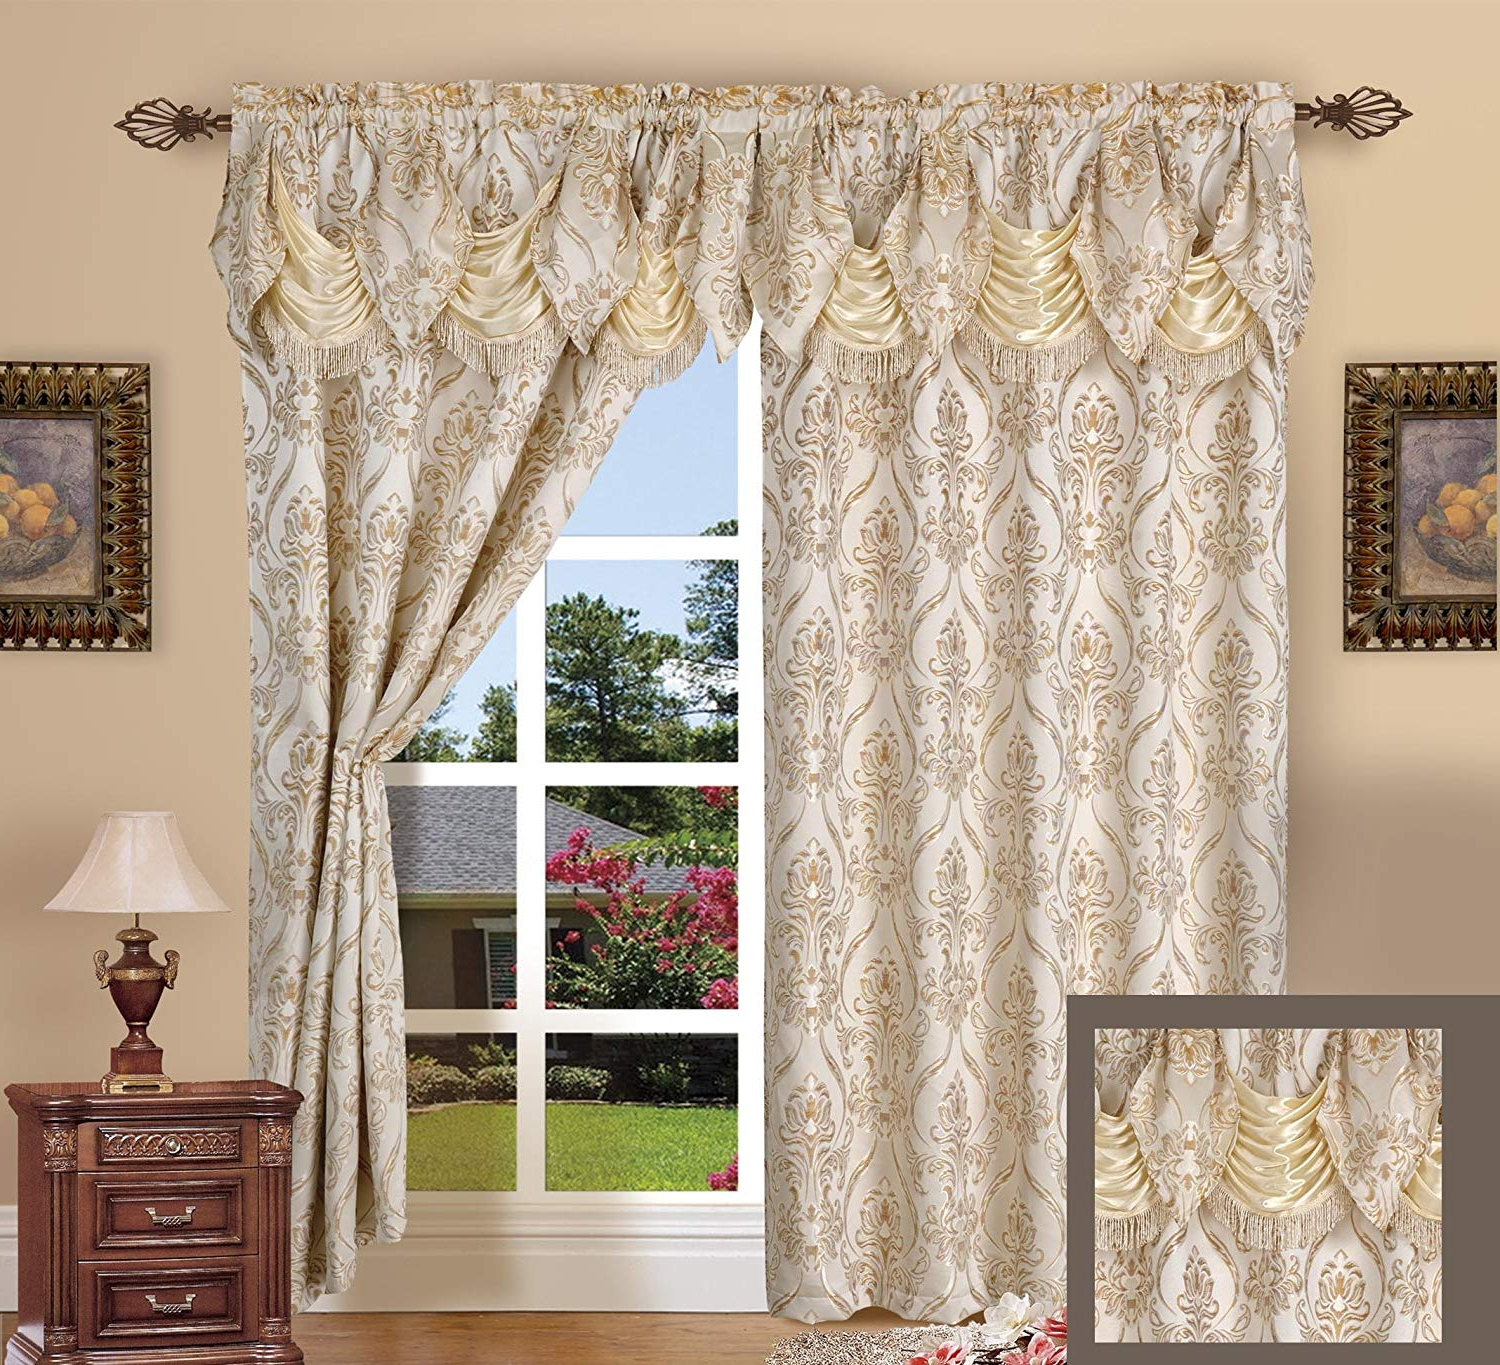 Well Known Elegant Comfort Penelopie Jacquard Look Curtain Panel Set With Attached Waterfall Valance, Set Of 2, 54x84 Inches, Beige With Elegant Comfort Window Sheer Curtain Panel Pairs (View 12 of 20)